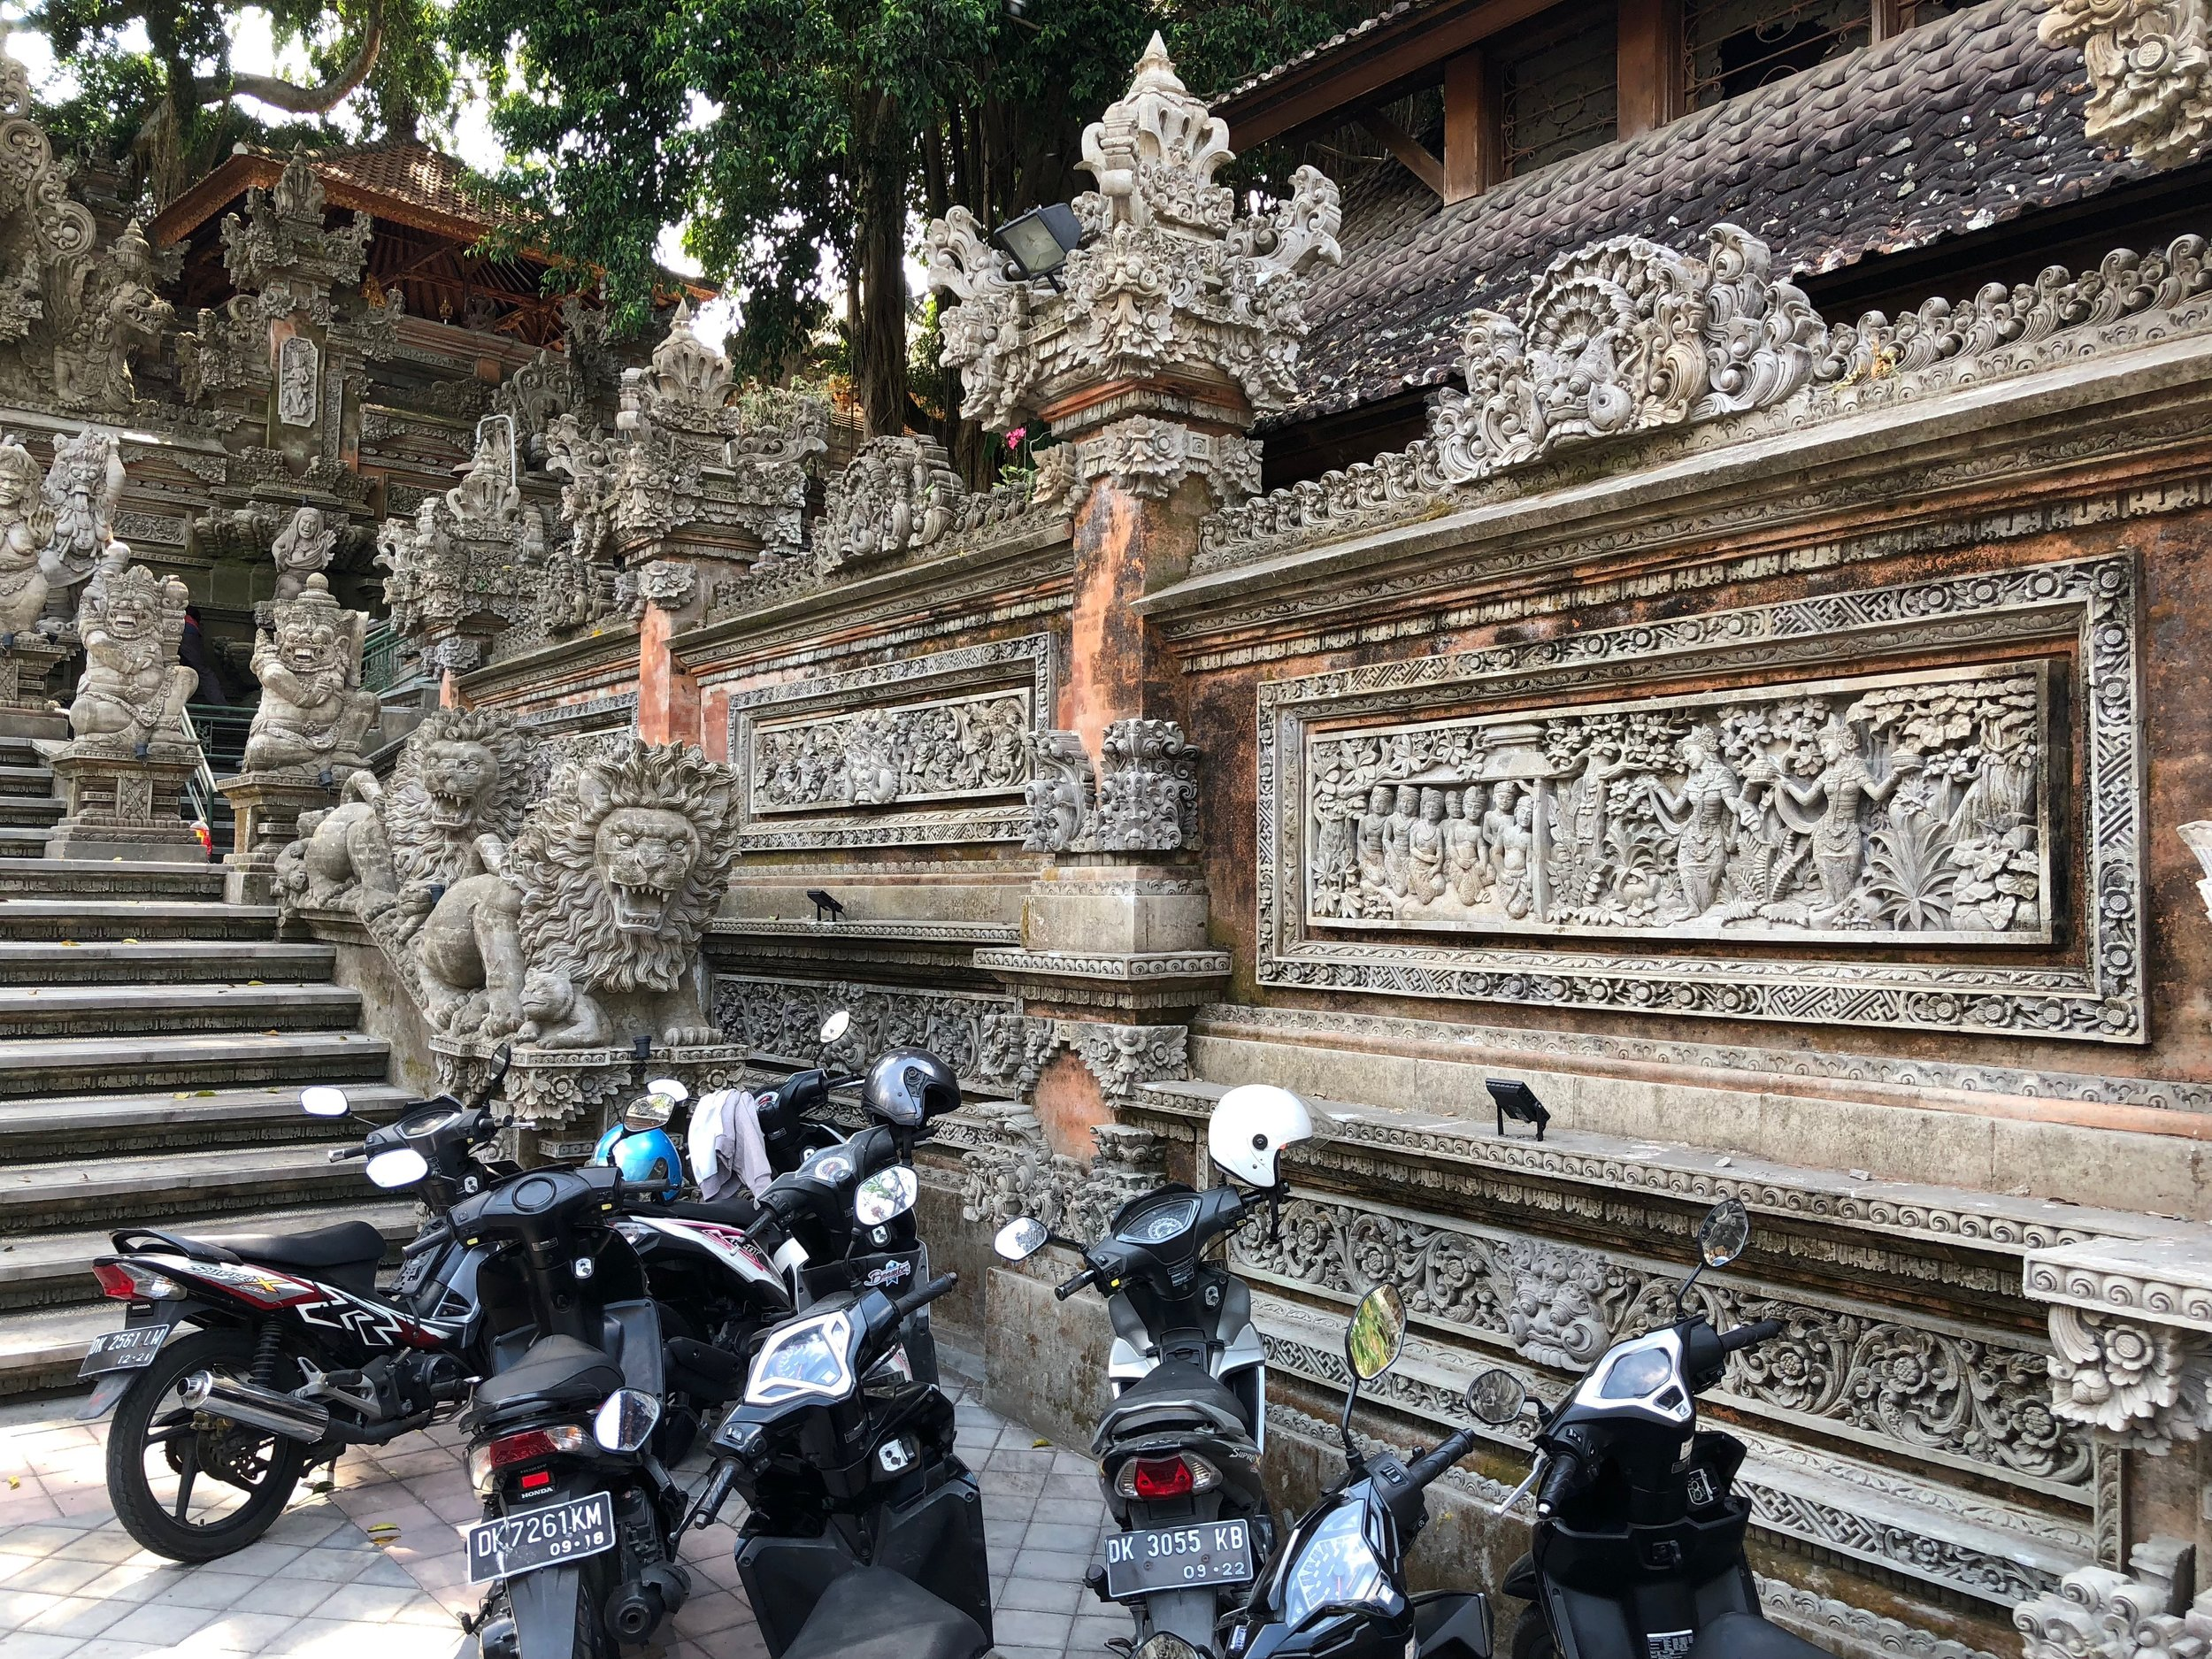 Motorbikes are ubiquitious on Bali